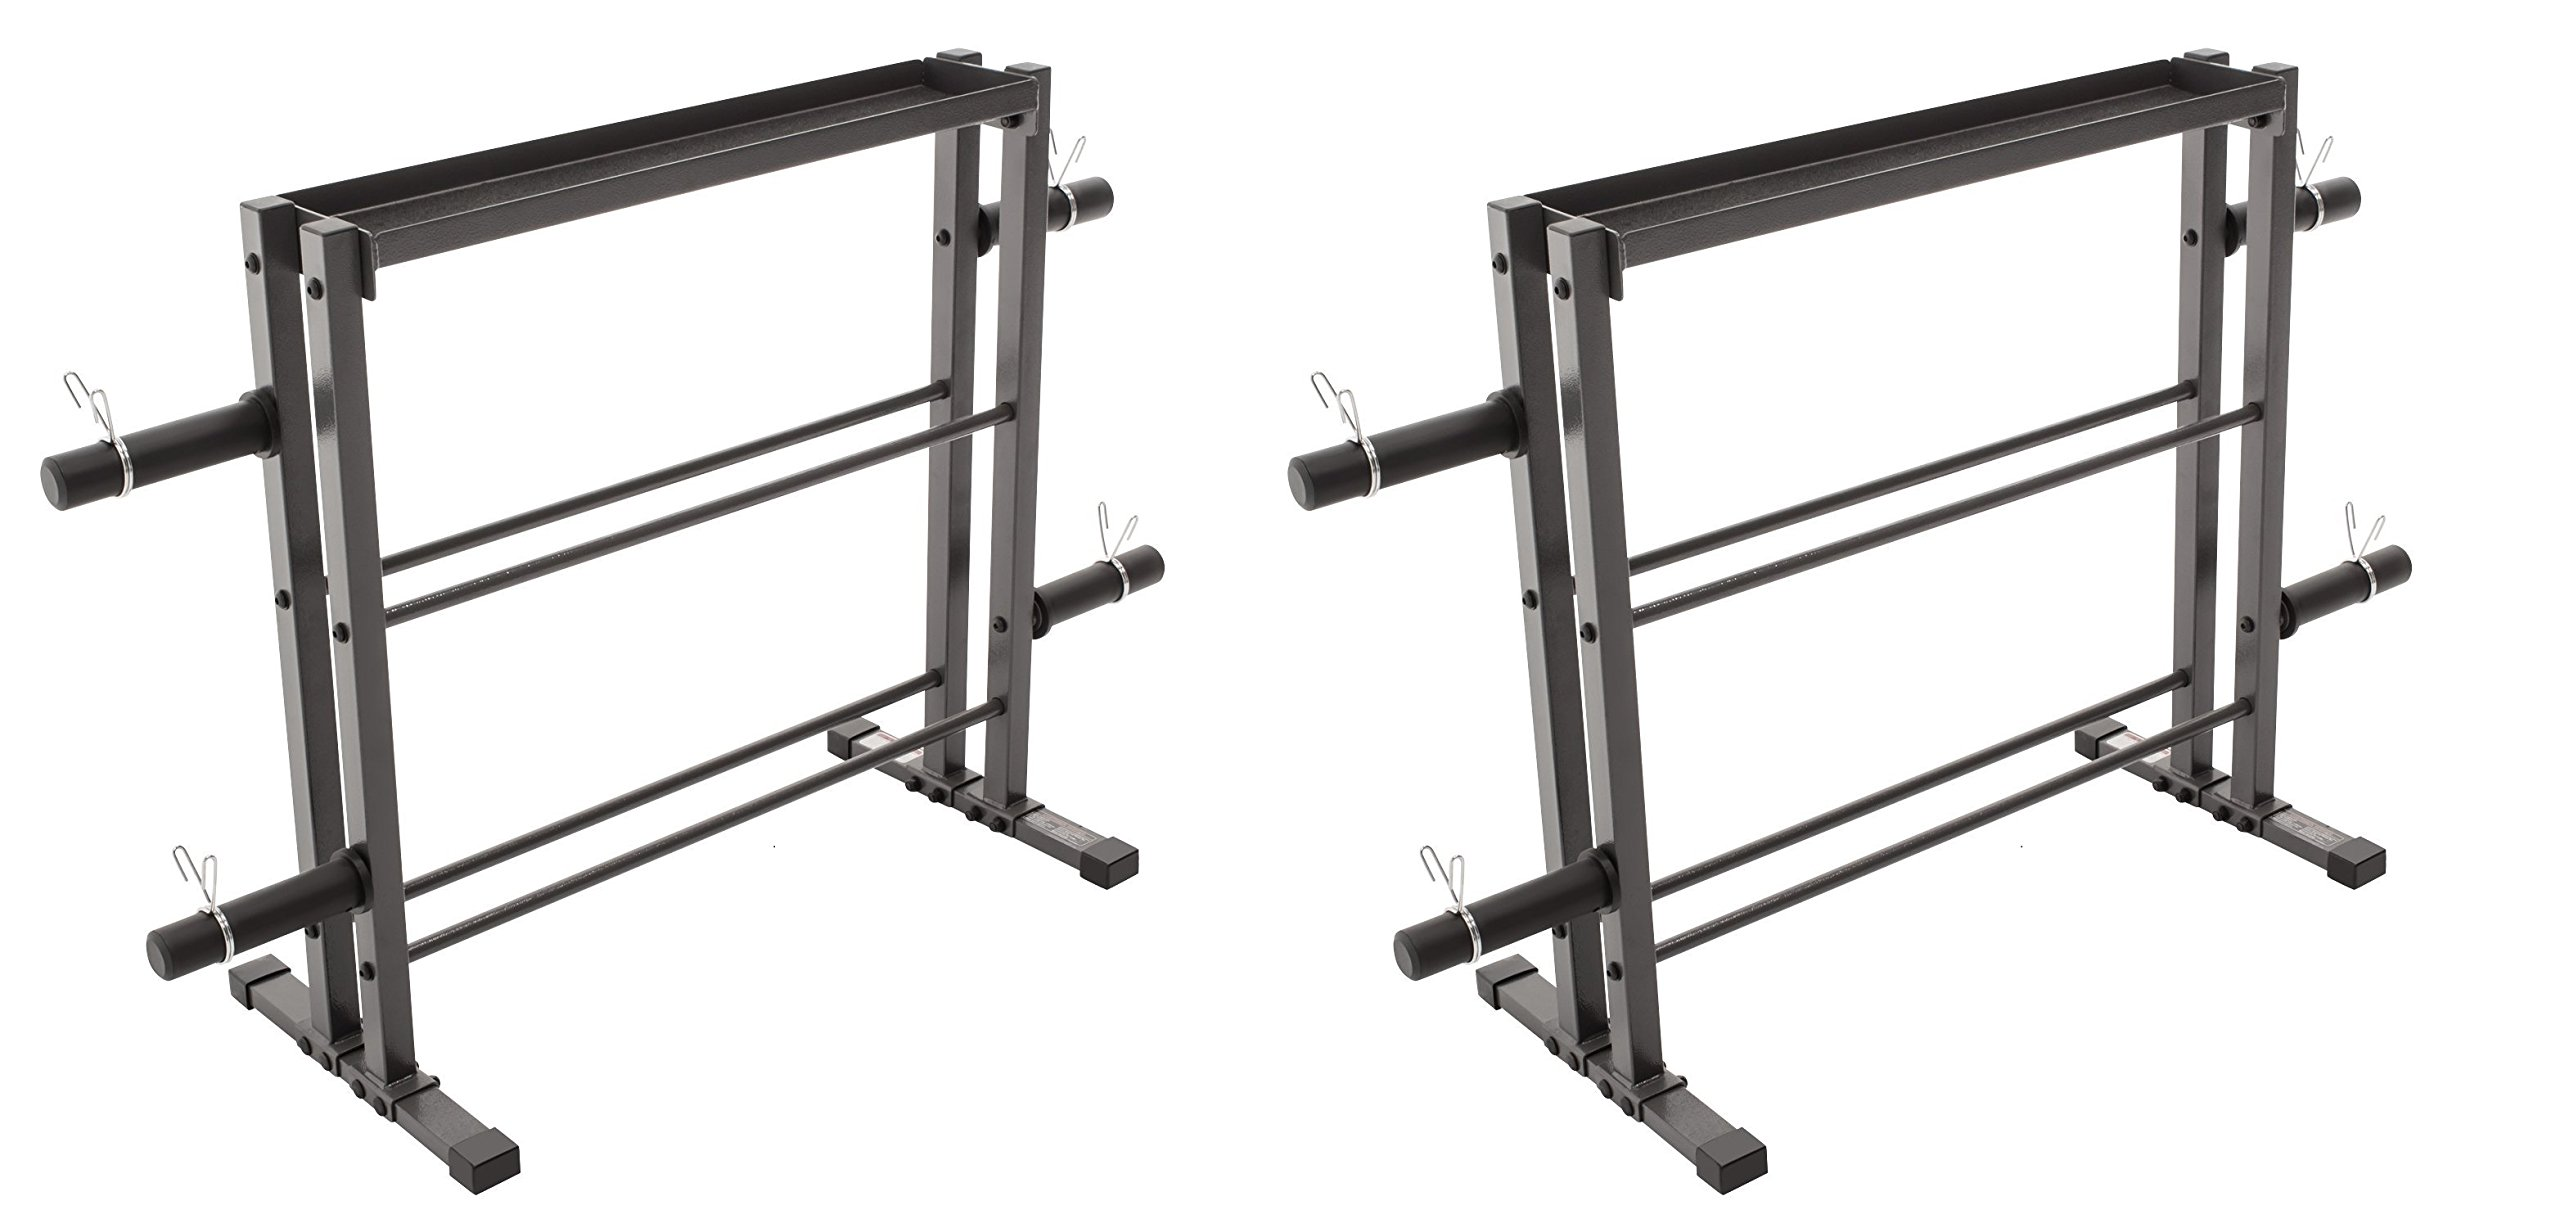 Marcy Combo Weights Storage Rack for Dumbbells, Kettlebells, and Weight Plates DBR-0117 (Pack of 2)